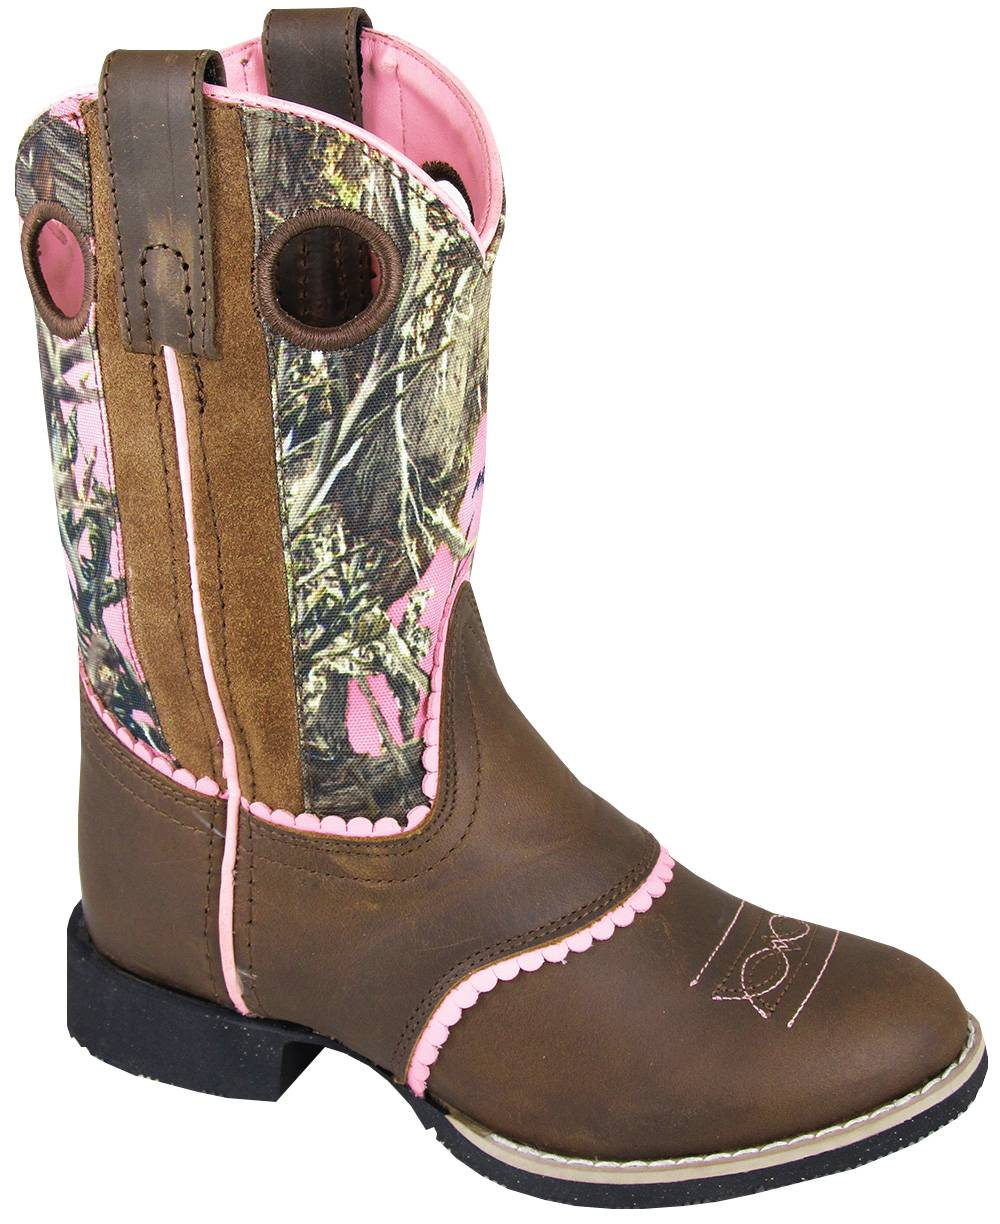 Smoky Mountain Ruby Belle Boots - Youth, Brown/Pink Camo